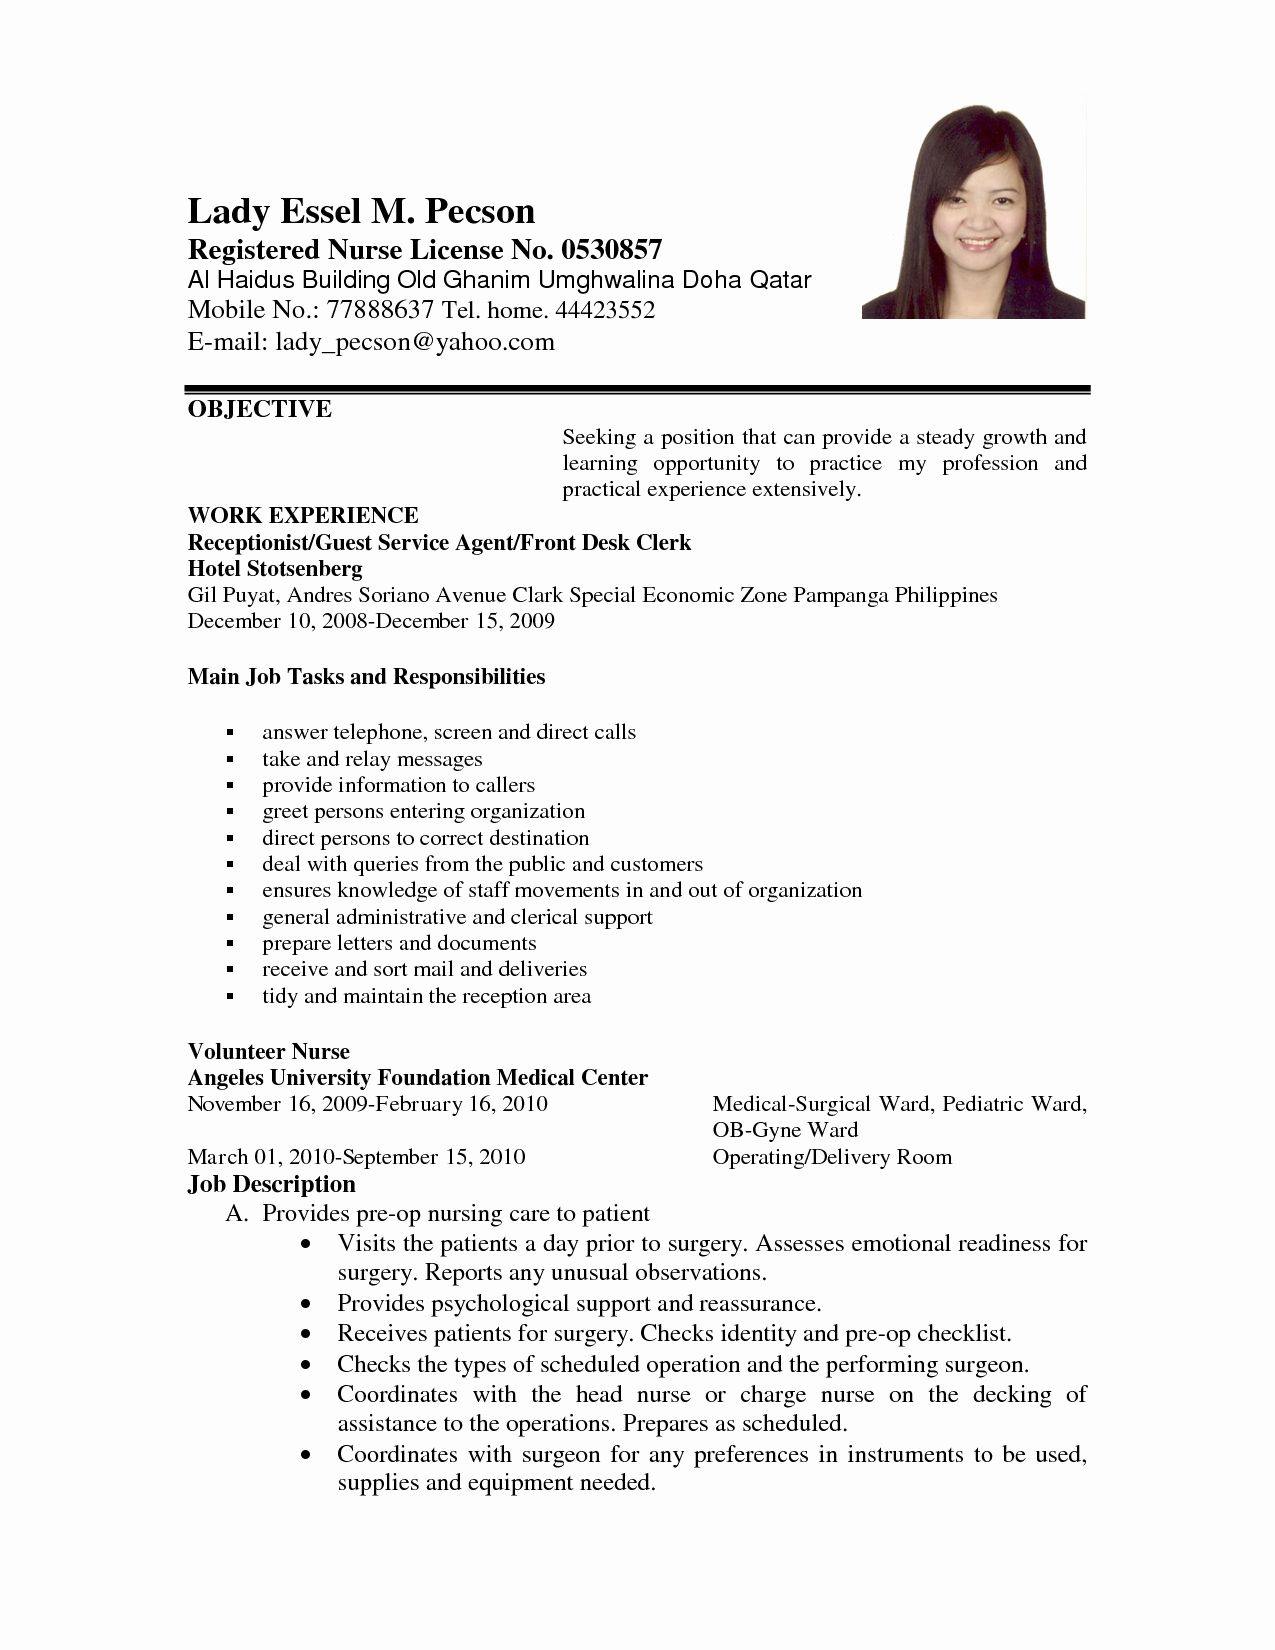 Duties Of Administrative Assistant Cover Letter For Administrative Assistant With No  News To Go 2 .